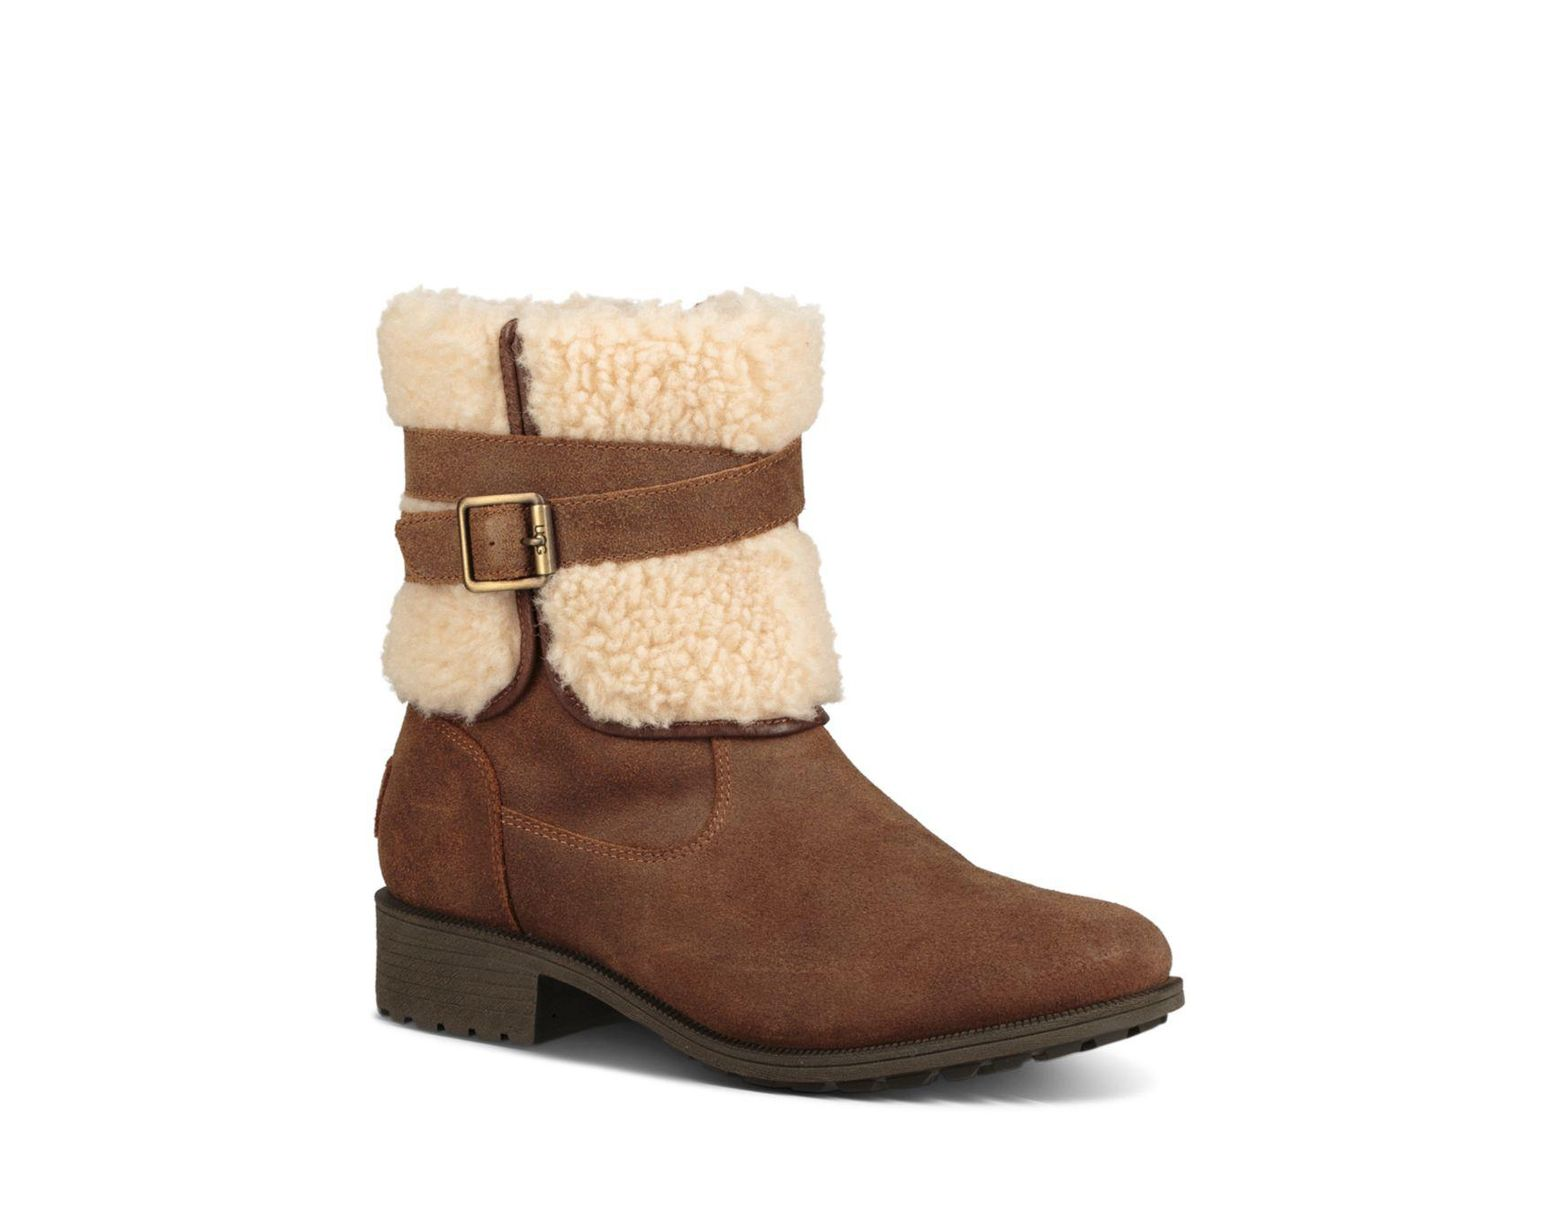 044f1bfb3e0 Brown Women's Blayre Round Toe Leather Boots